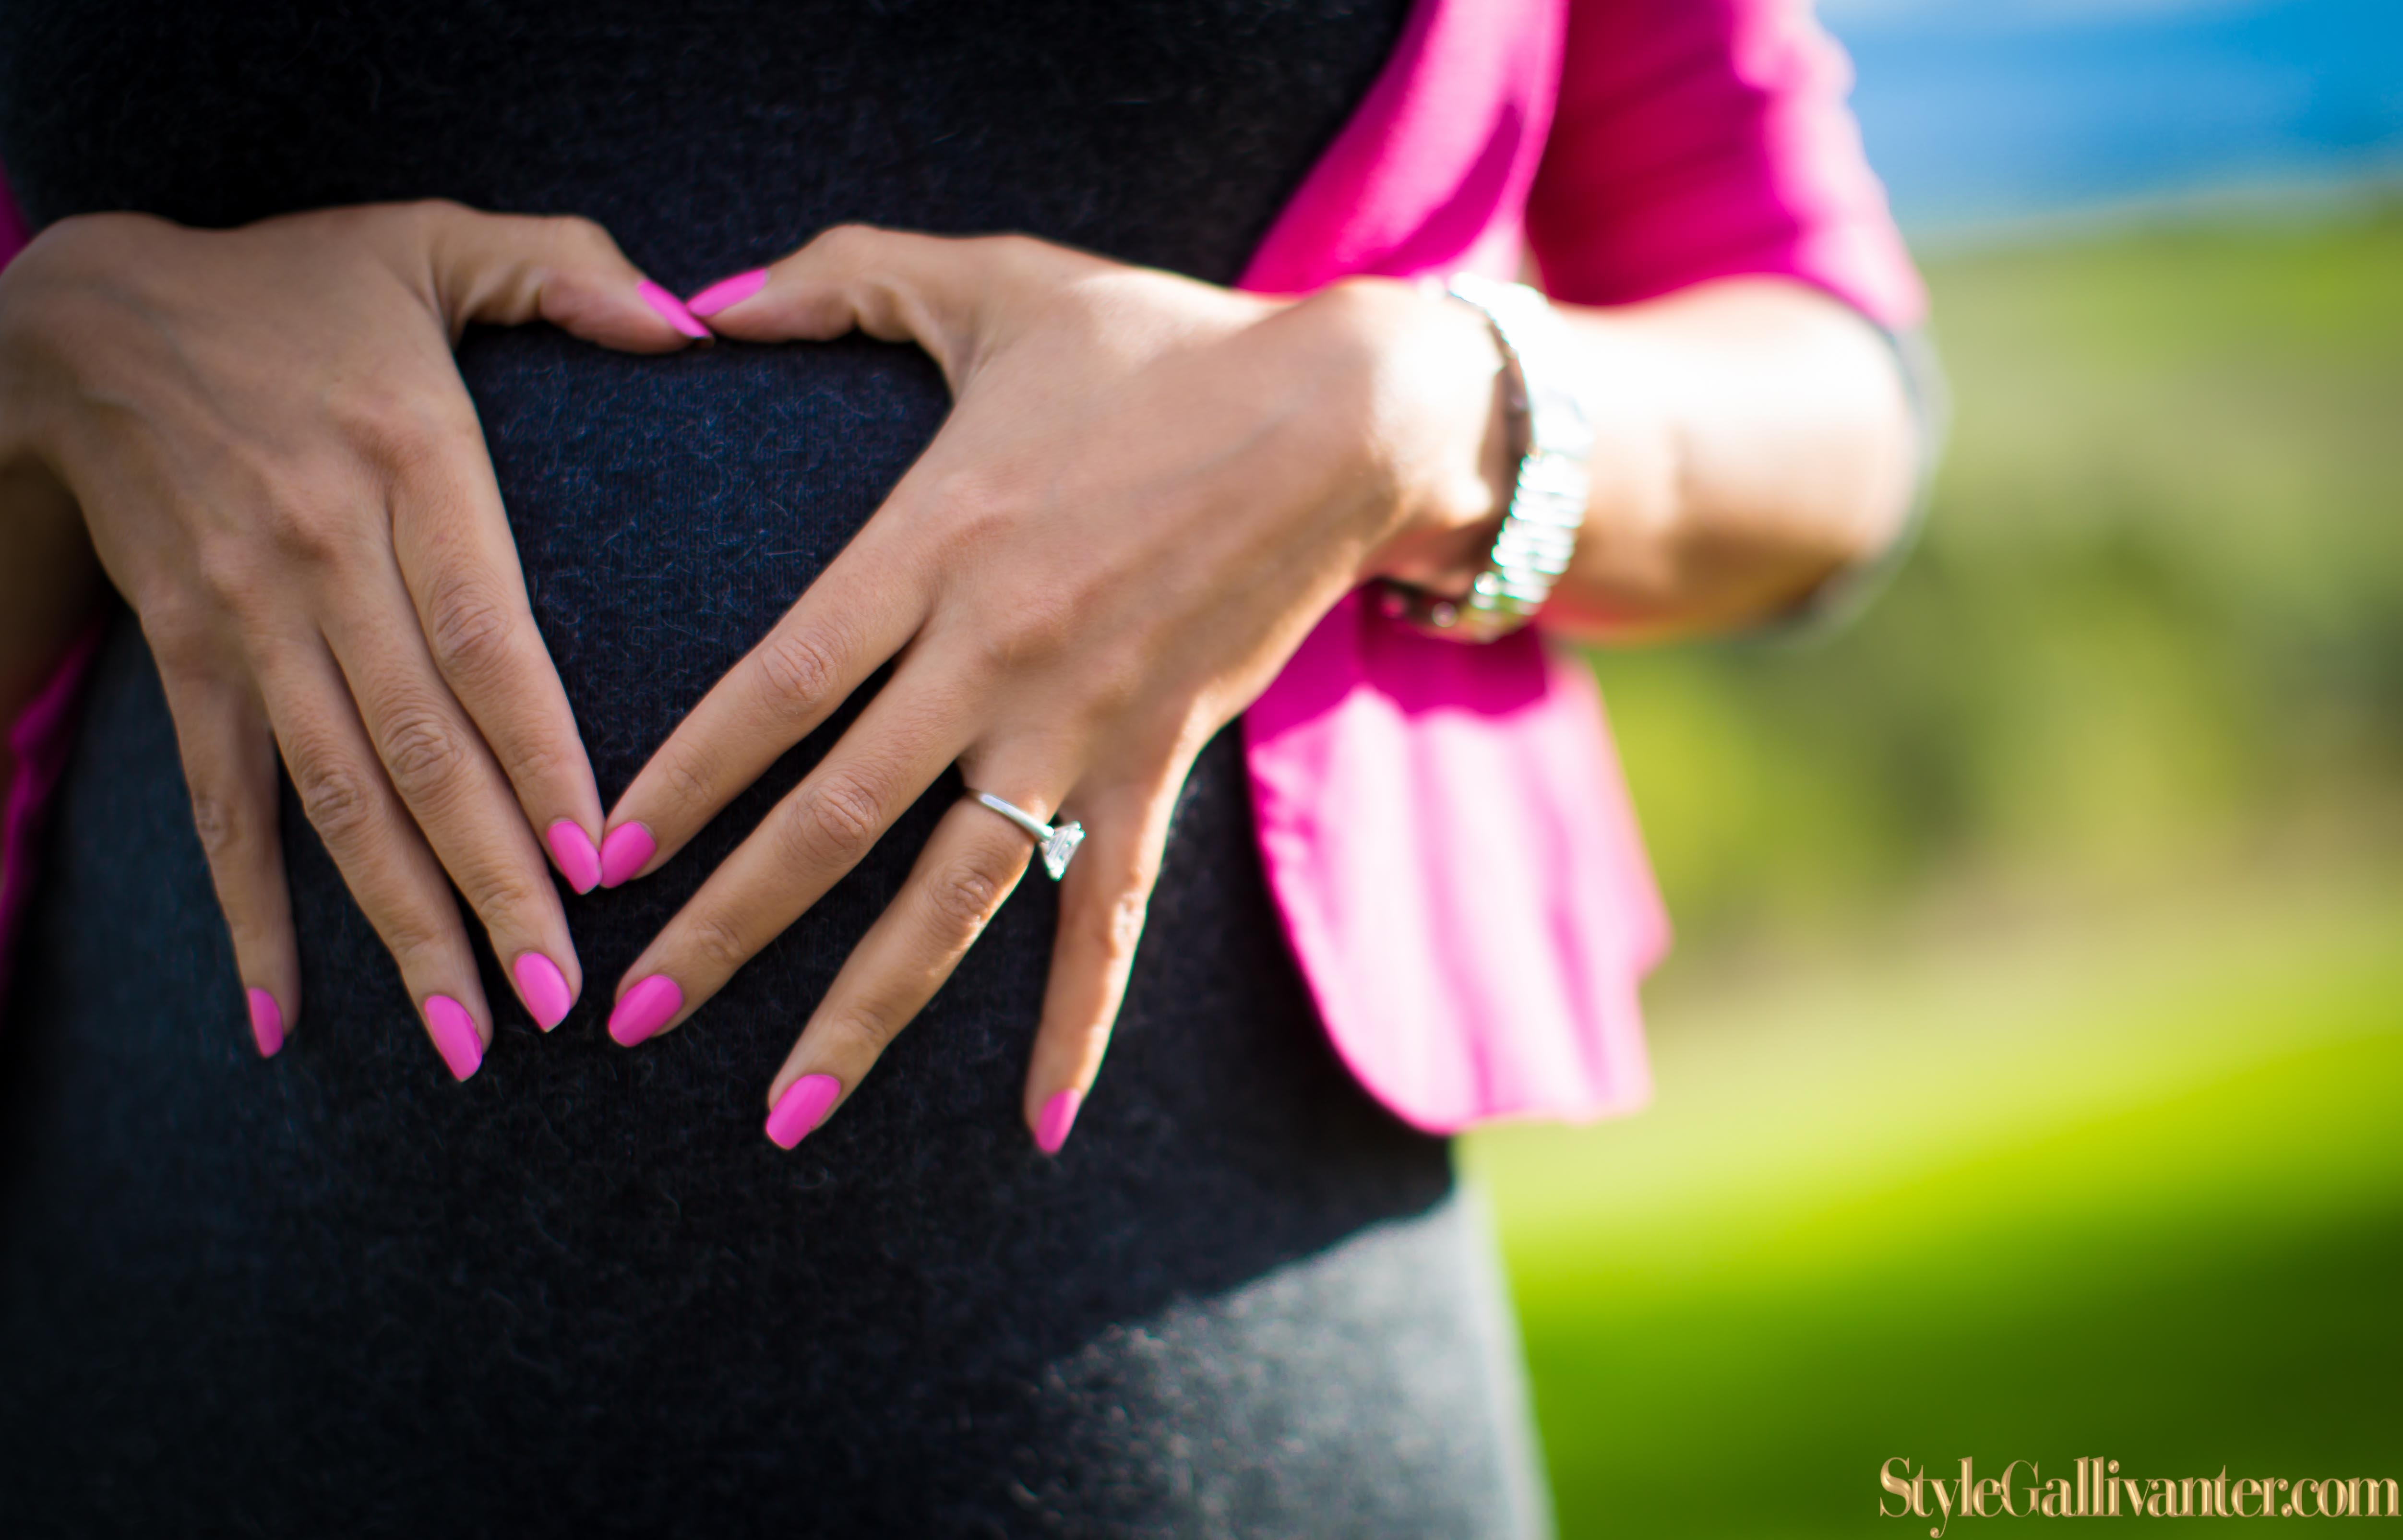 BUMP-MODELS-AUSTRALIA_GREY-AND-PINK_WINTER-DRESS-TREND_PREGNANT-FASHION-BLOGGERS-MELBOURNE_MELBOURNE'S BEST MUMMY-BLOGGERS_STRAPPY-SILVER HEELS-5